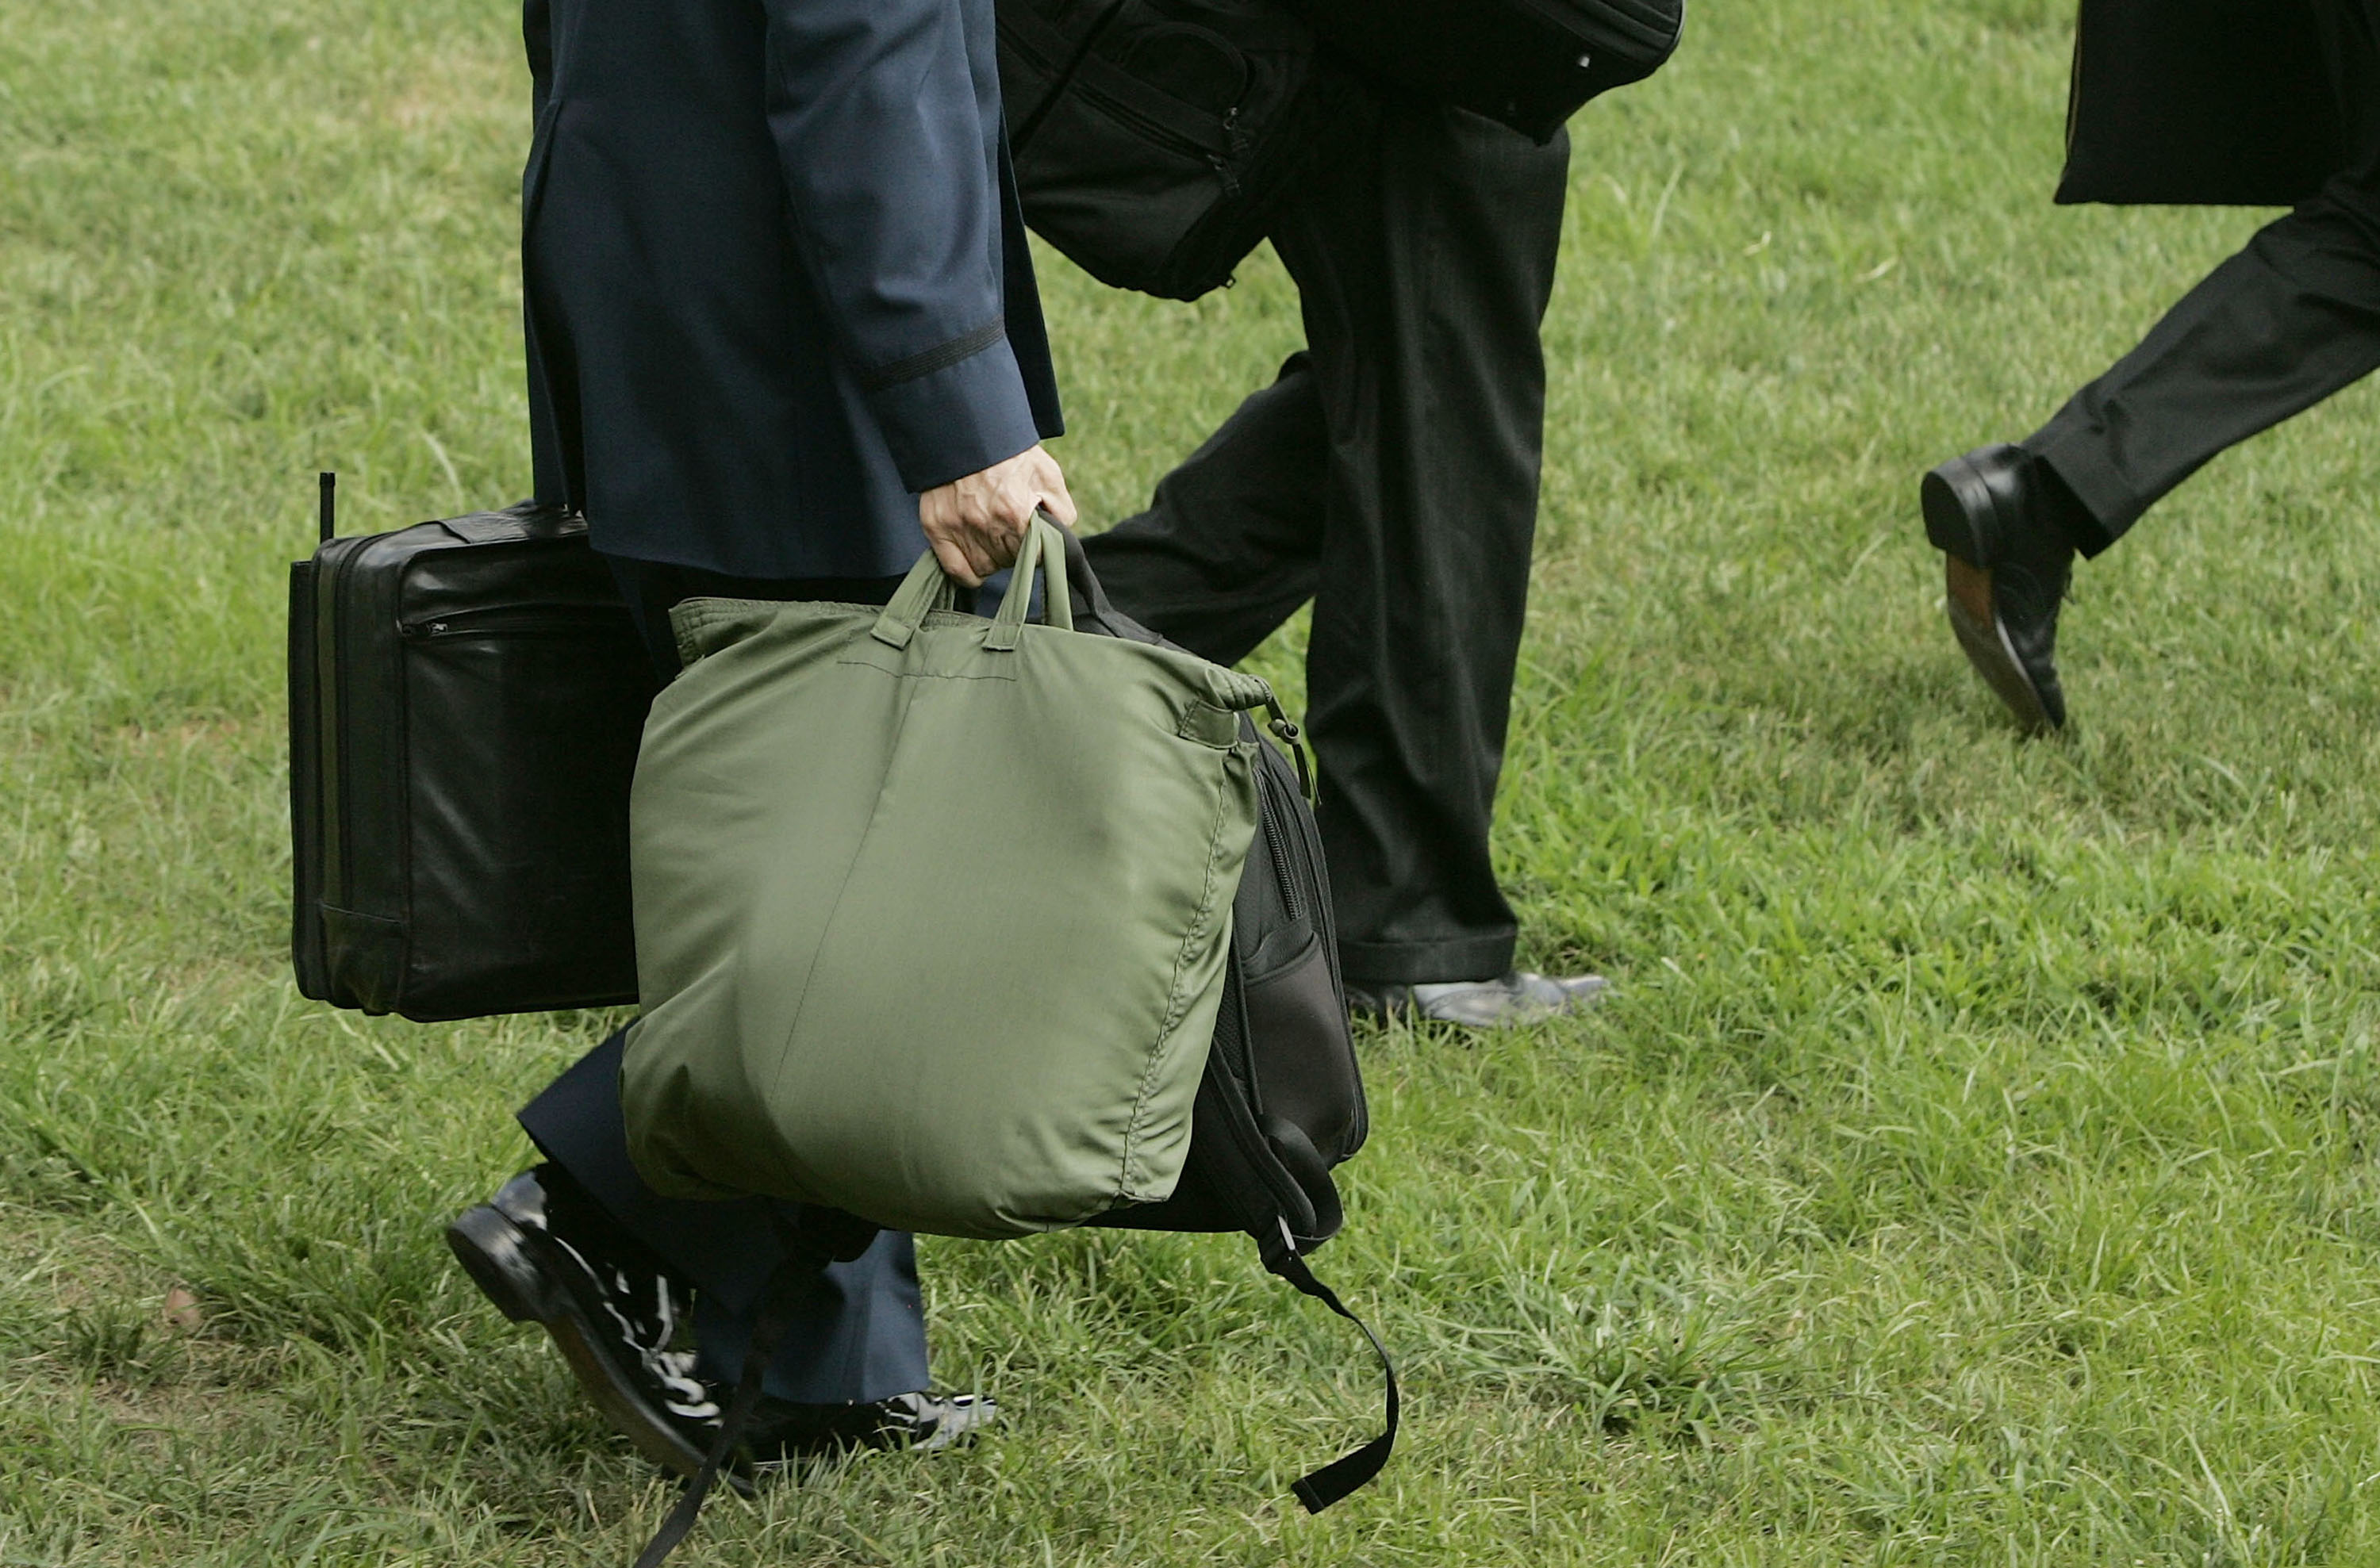 """A member of the U.S. military carries the """"football,"""" the case in his left hand, as he walks behind U.S. President George W. Bush toward Marine One on the South Lawn of the White House August 2, 2005 in Washington, DC. Photo by Mark Wilson/Getty Images"""